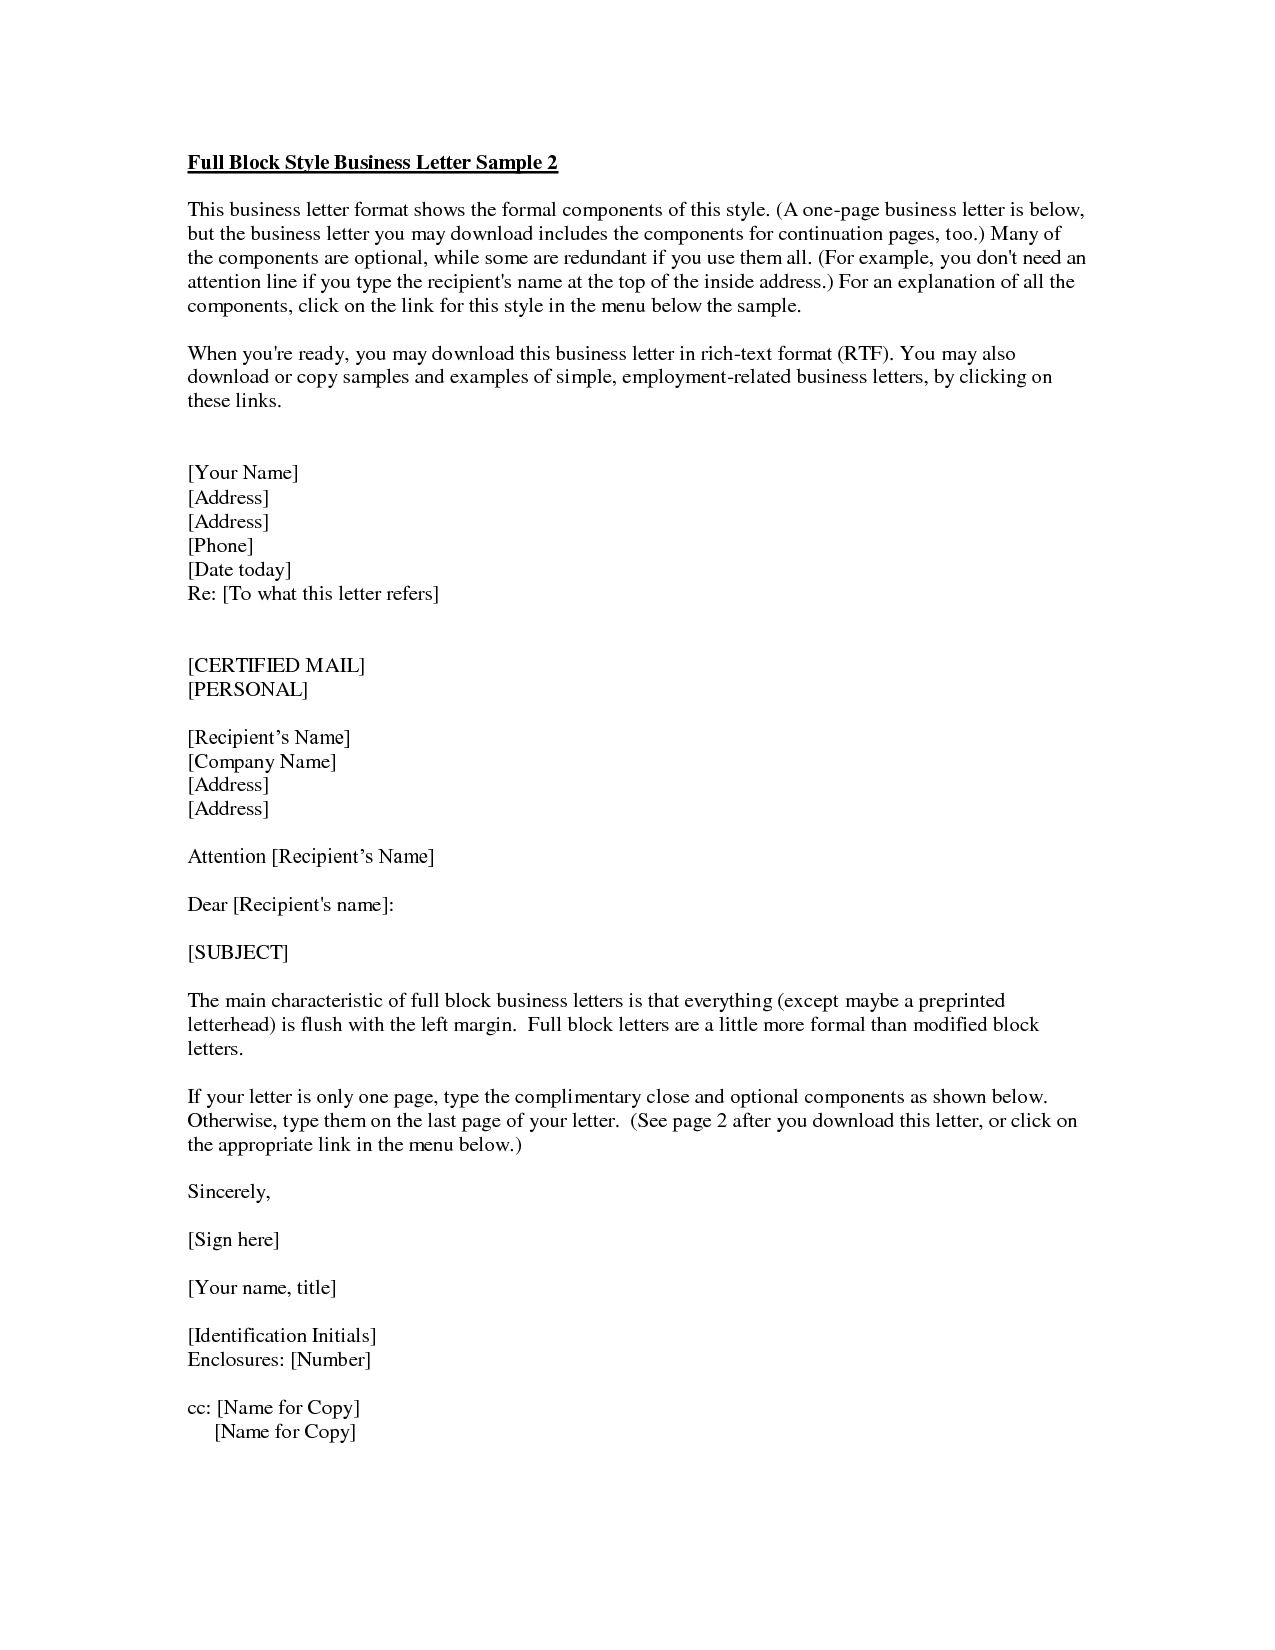 Business Letter Format With Cc And Enclosures Resume Pics And Letter